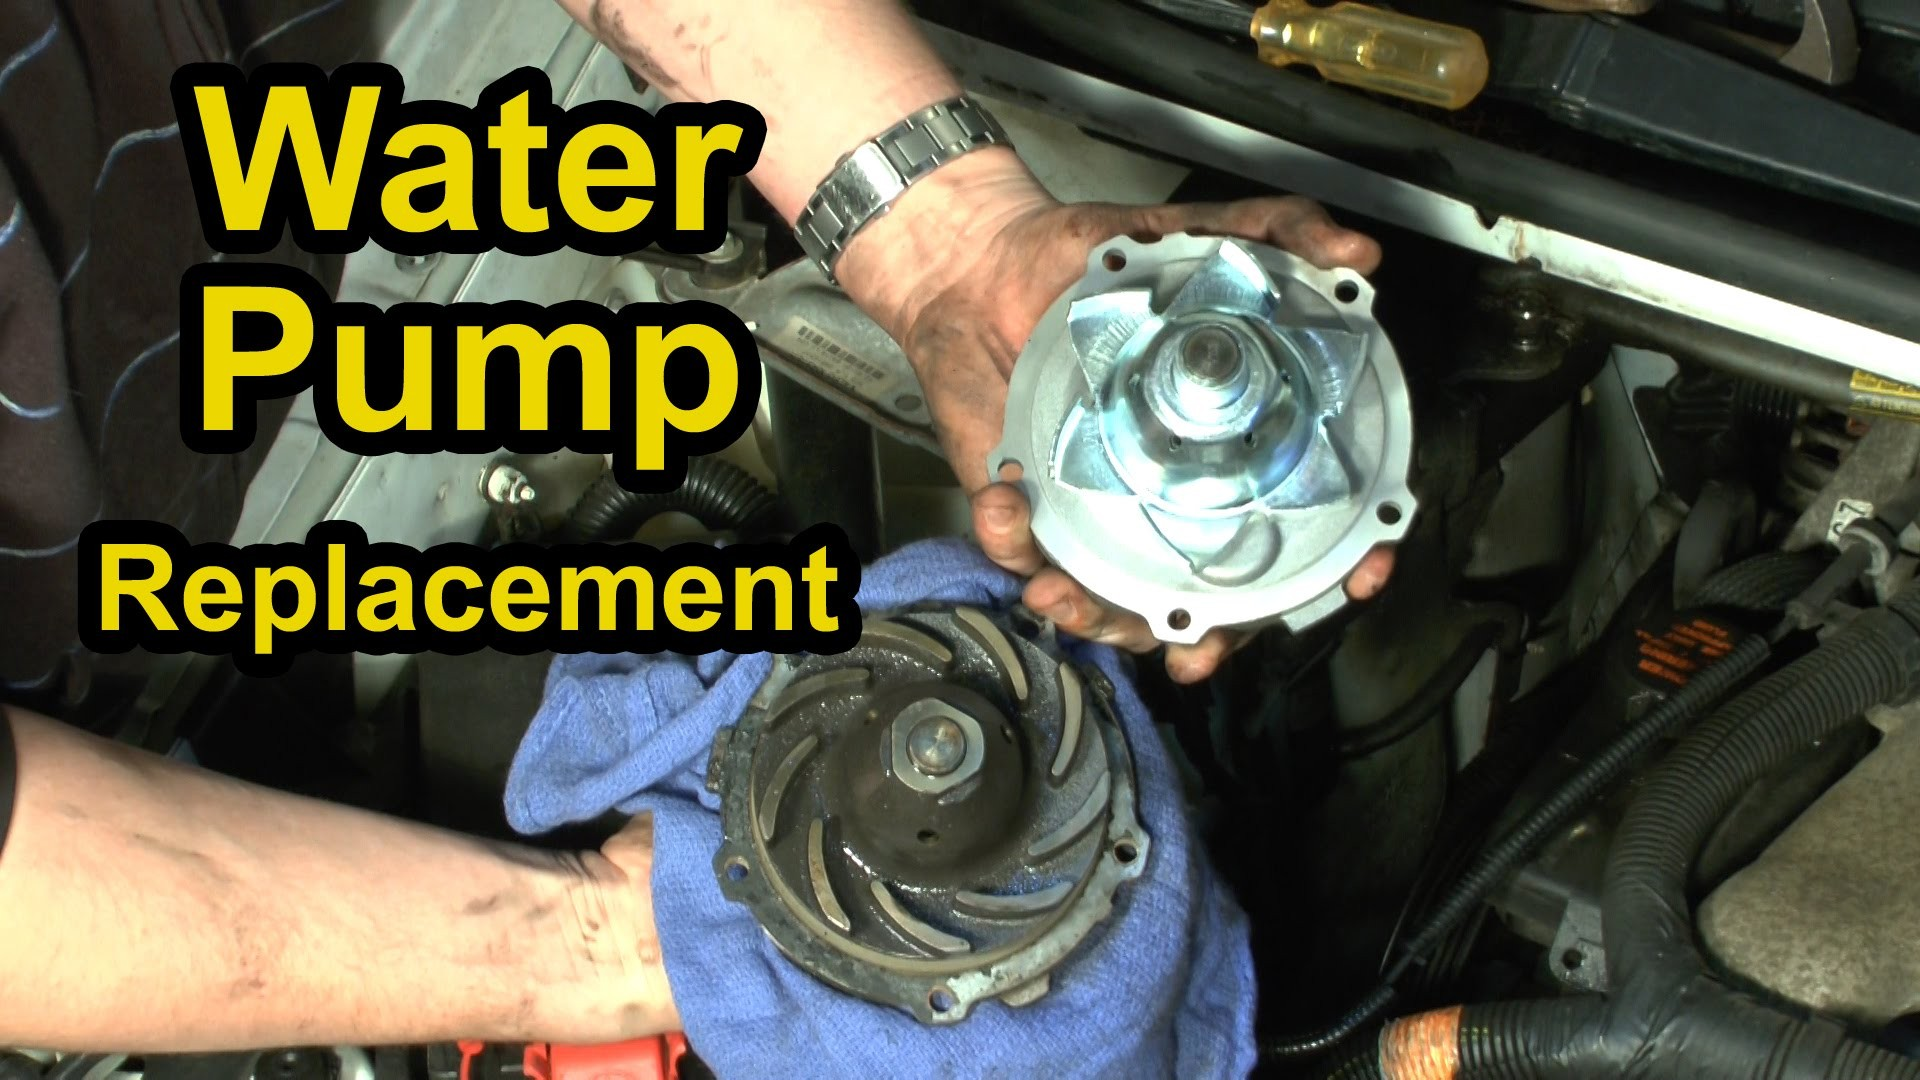 Chevy Venture Engine Diagram Water Pump Replacement 3 4l V6 Step By Instructions